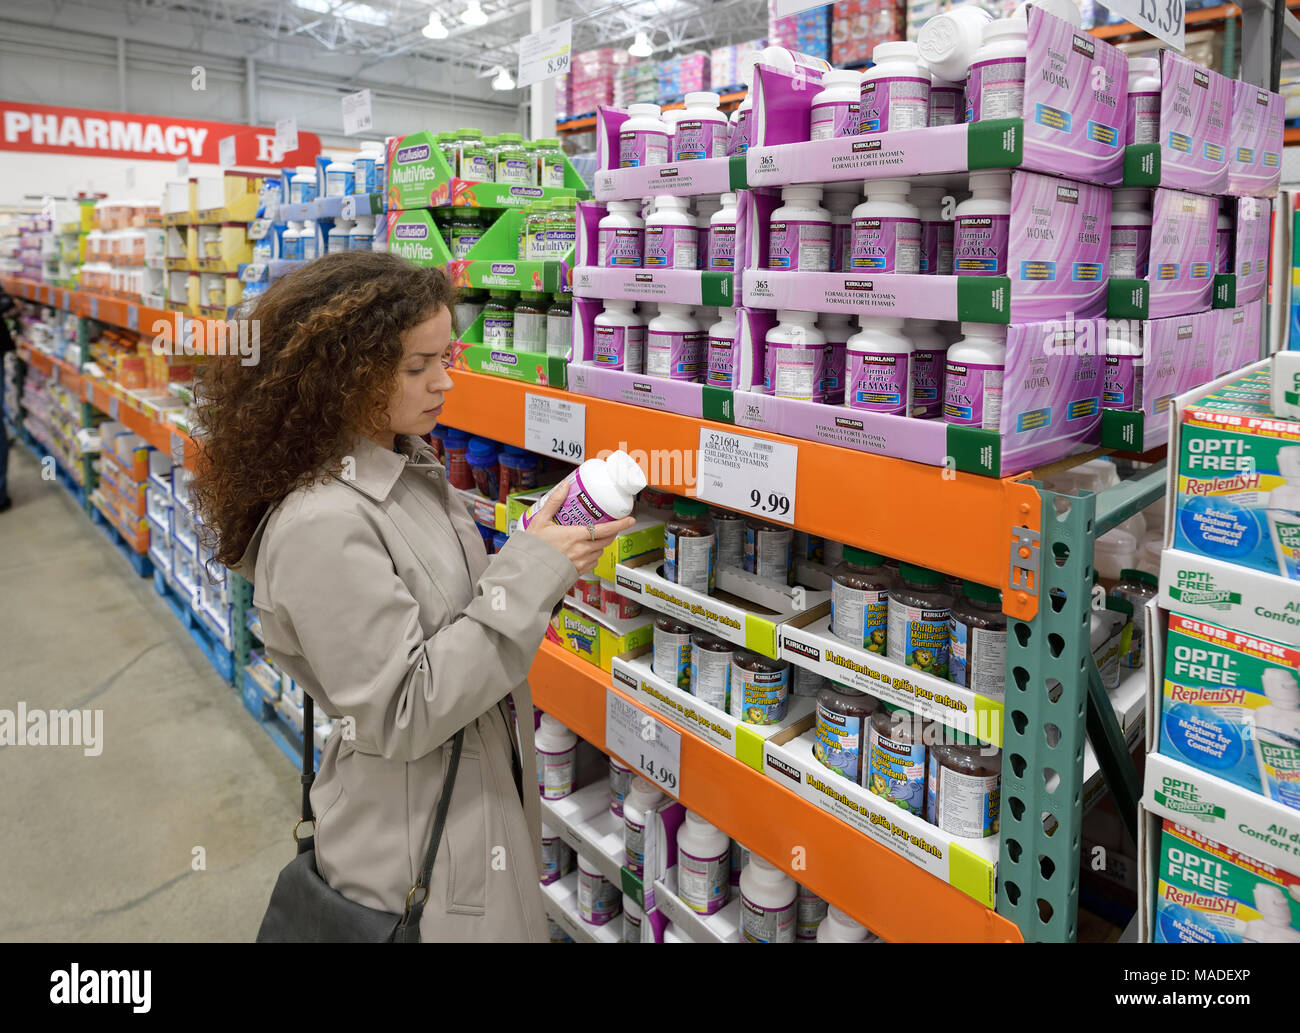 Woman reading indredients of Kirkland Women formula supplements at Costco Wholesale membership warehouse store pharmacy section. British Columbia, Can Stock Photo